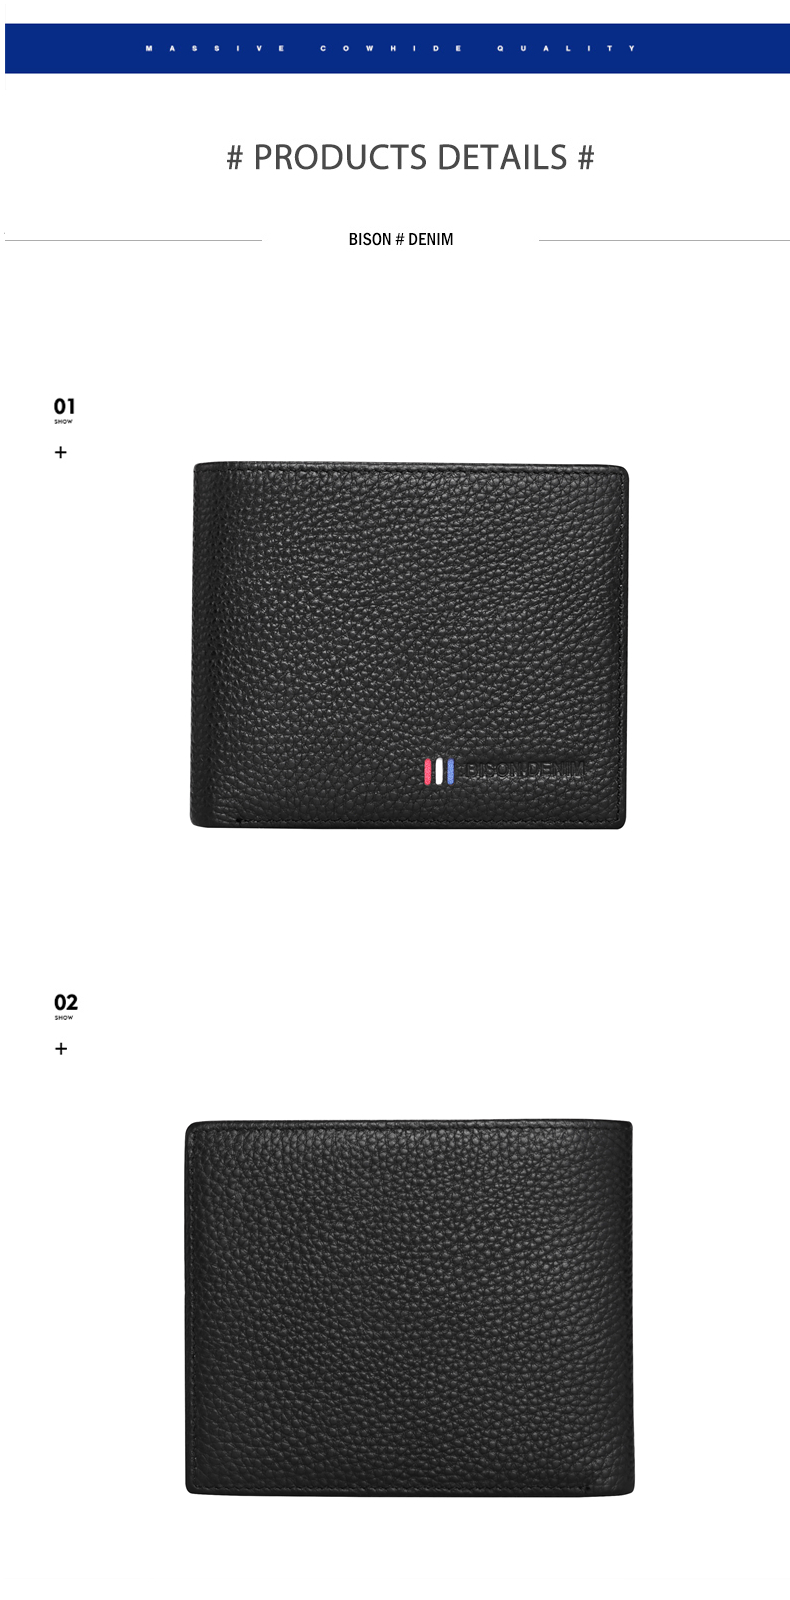 H8d0237c6cfb24e199a1b1aad517885909 - BISON DENIM 100% Cow Leather Wallet Men Fashion Bifold Card Holder Wallet RFID Blocking Male Short Purse High Quality N4475